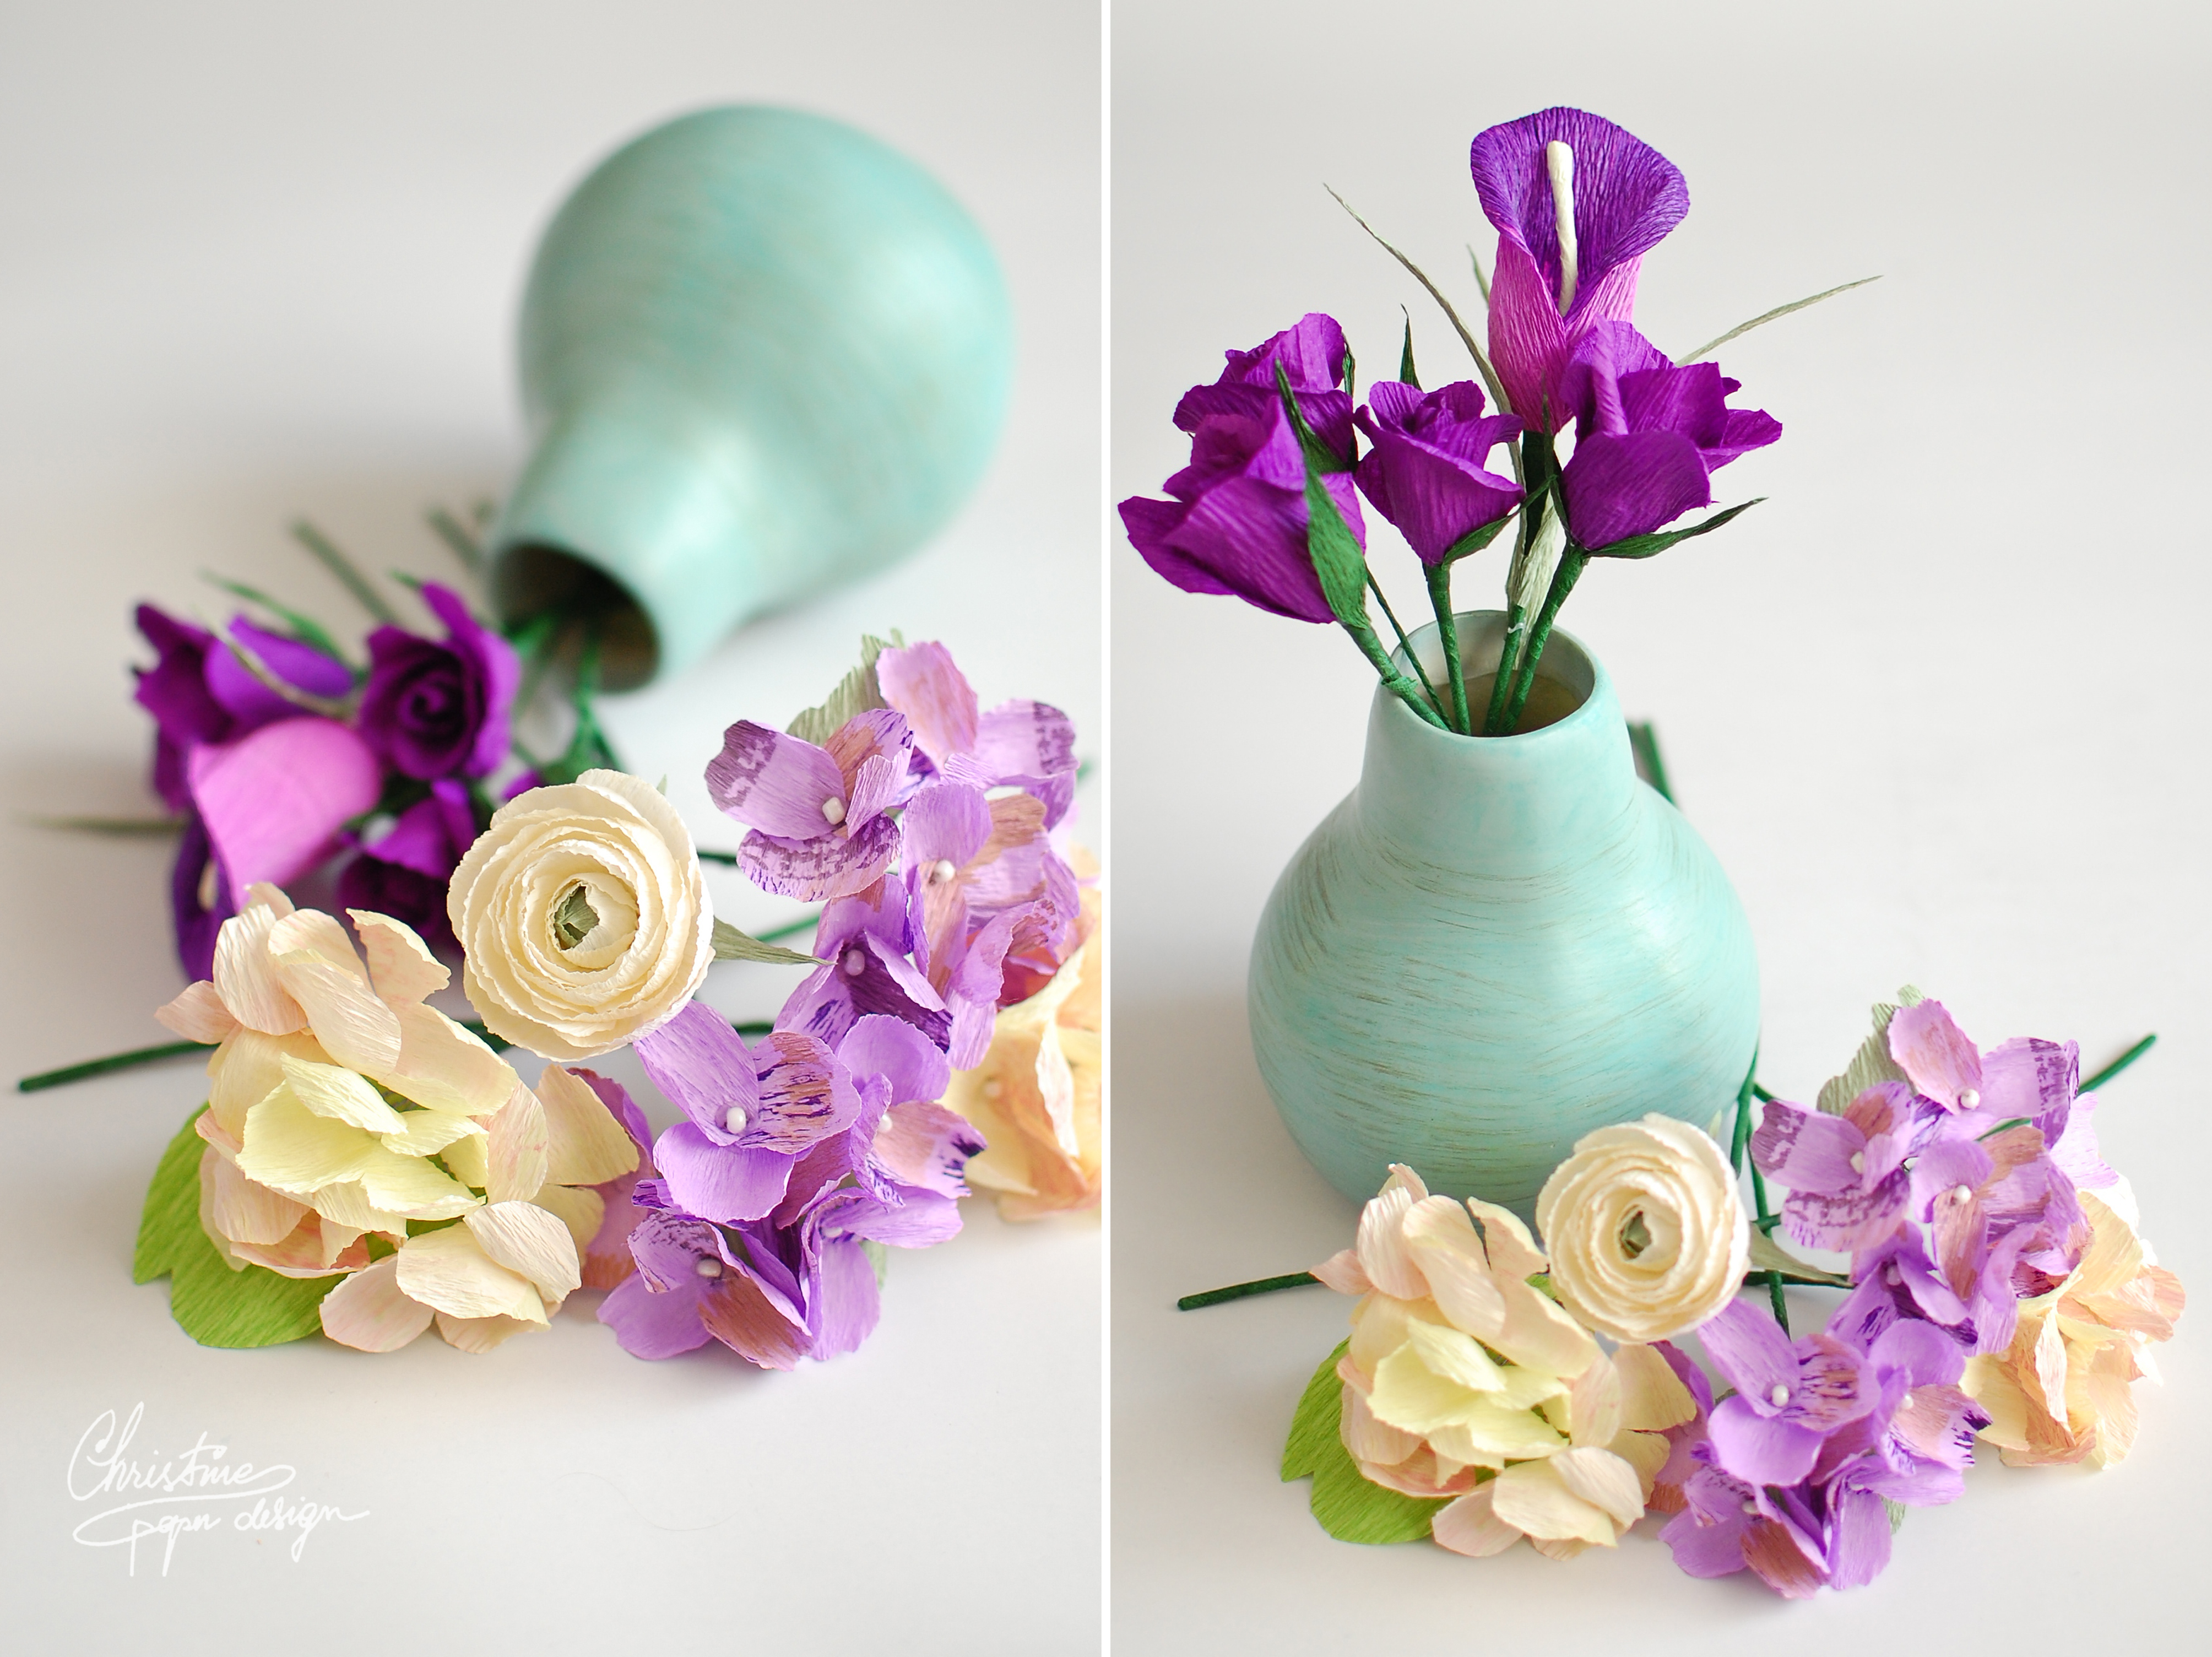 Christine paper design - paper flowers (4)